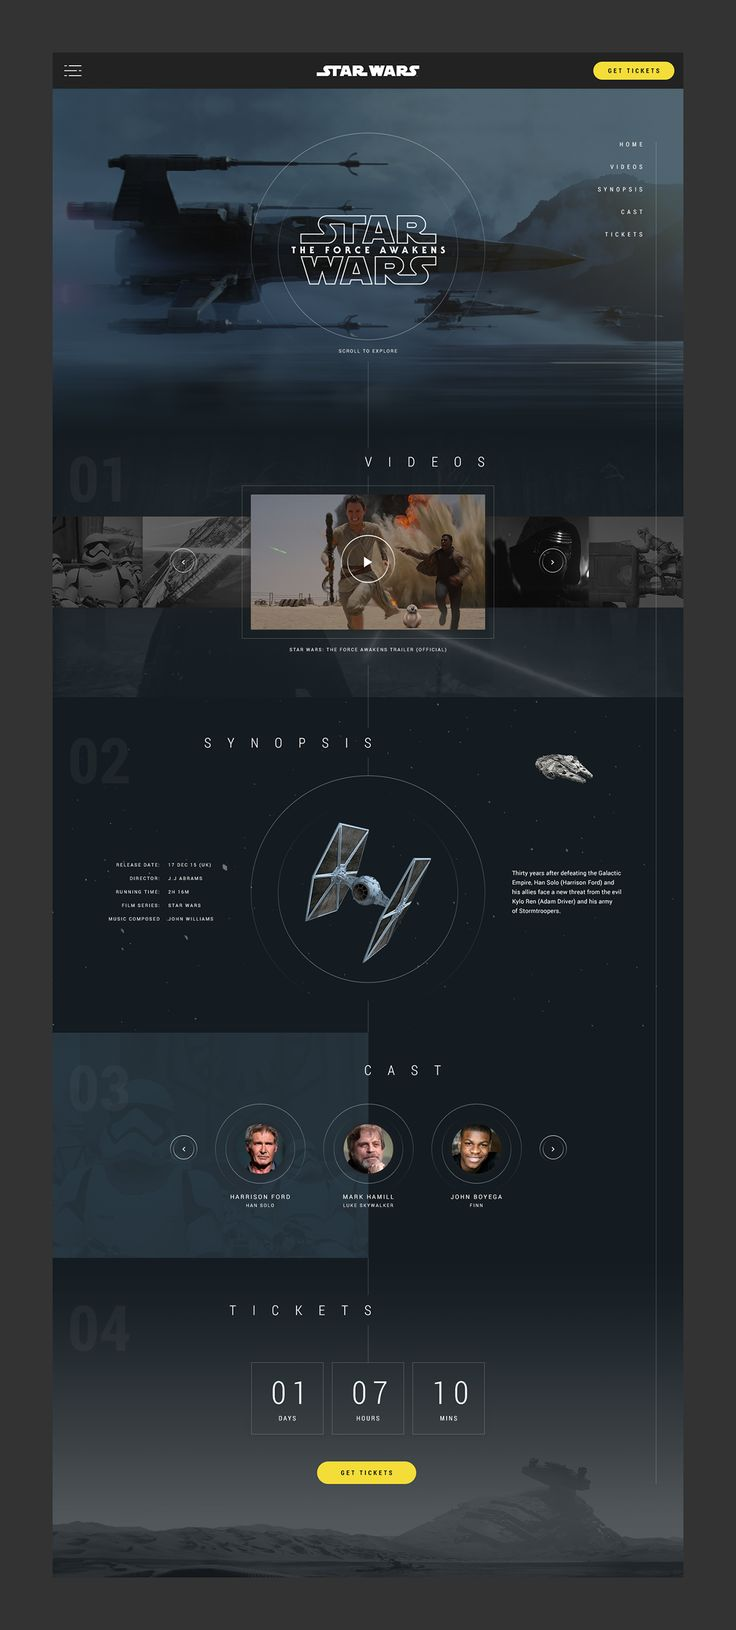 With one day to go until the new Star Wars film is released, we at CDD decided to put together our own little landing page! We did this in about 4 hours.